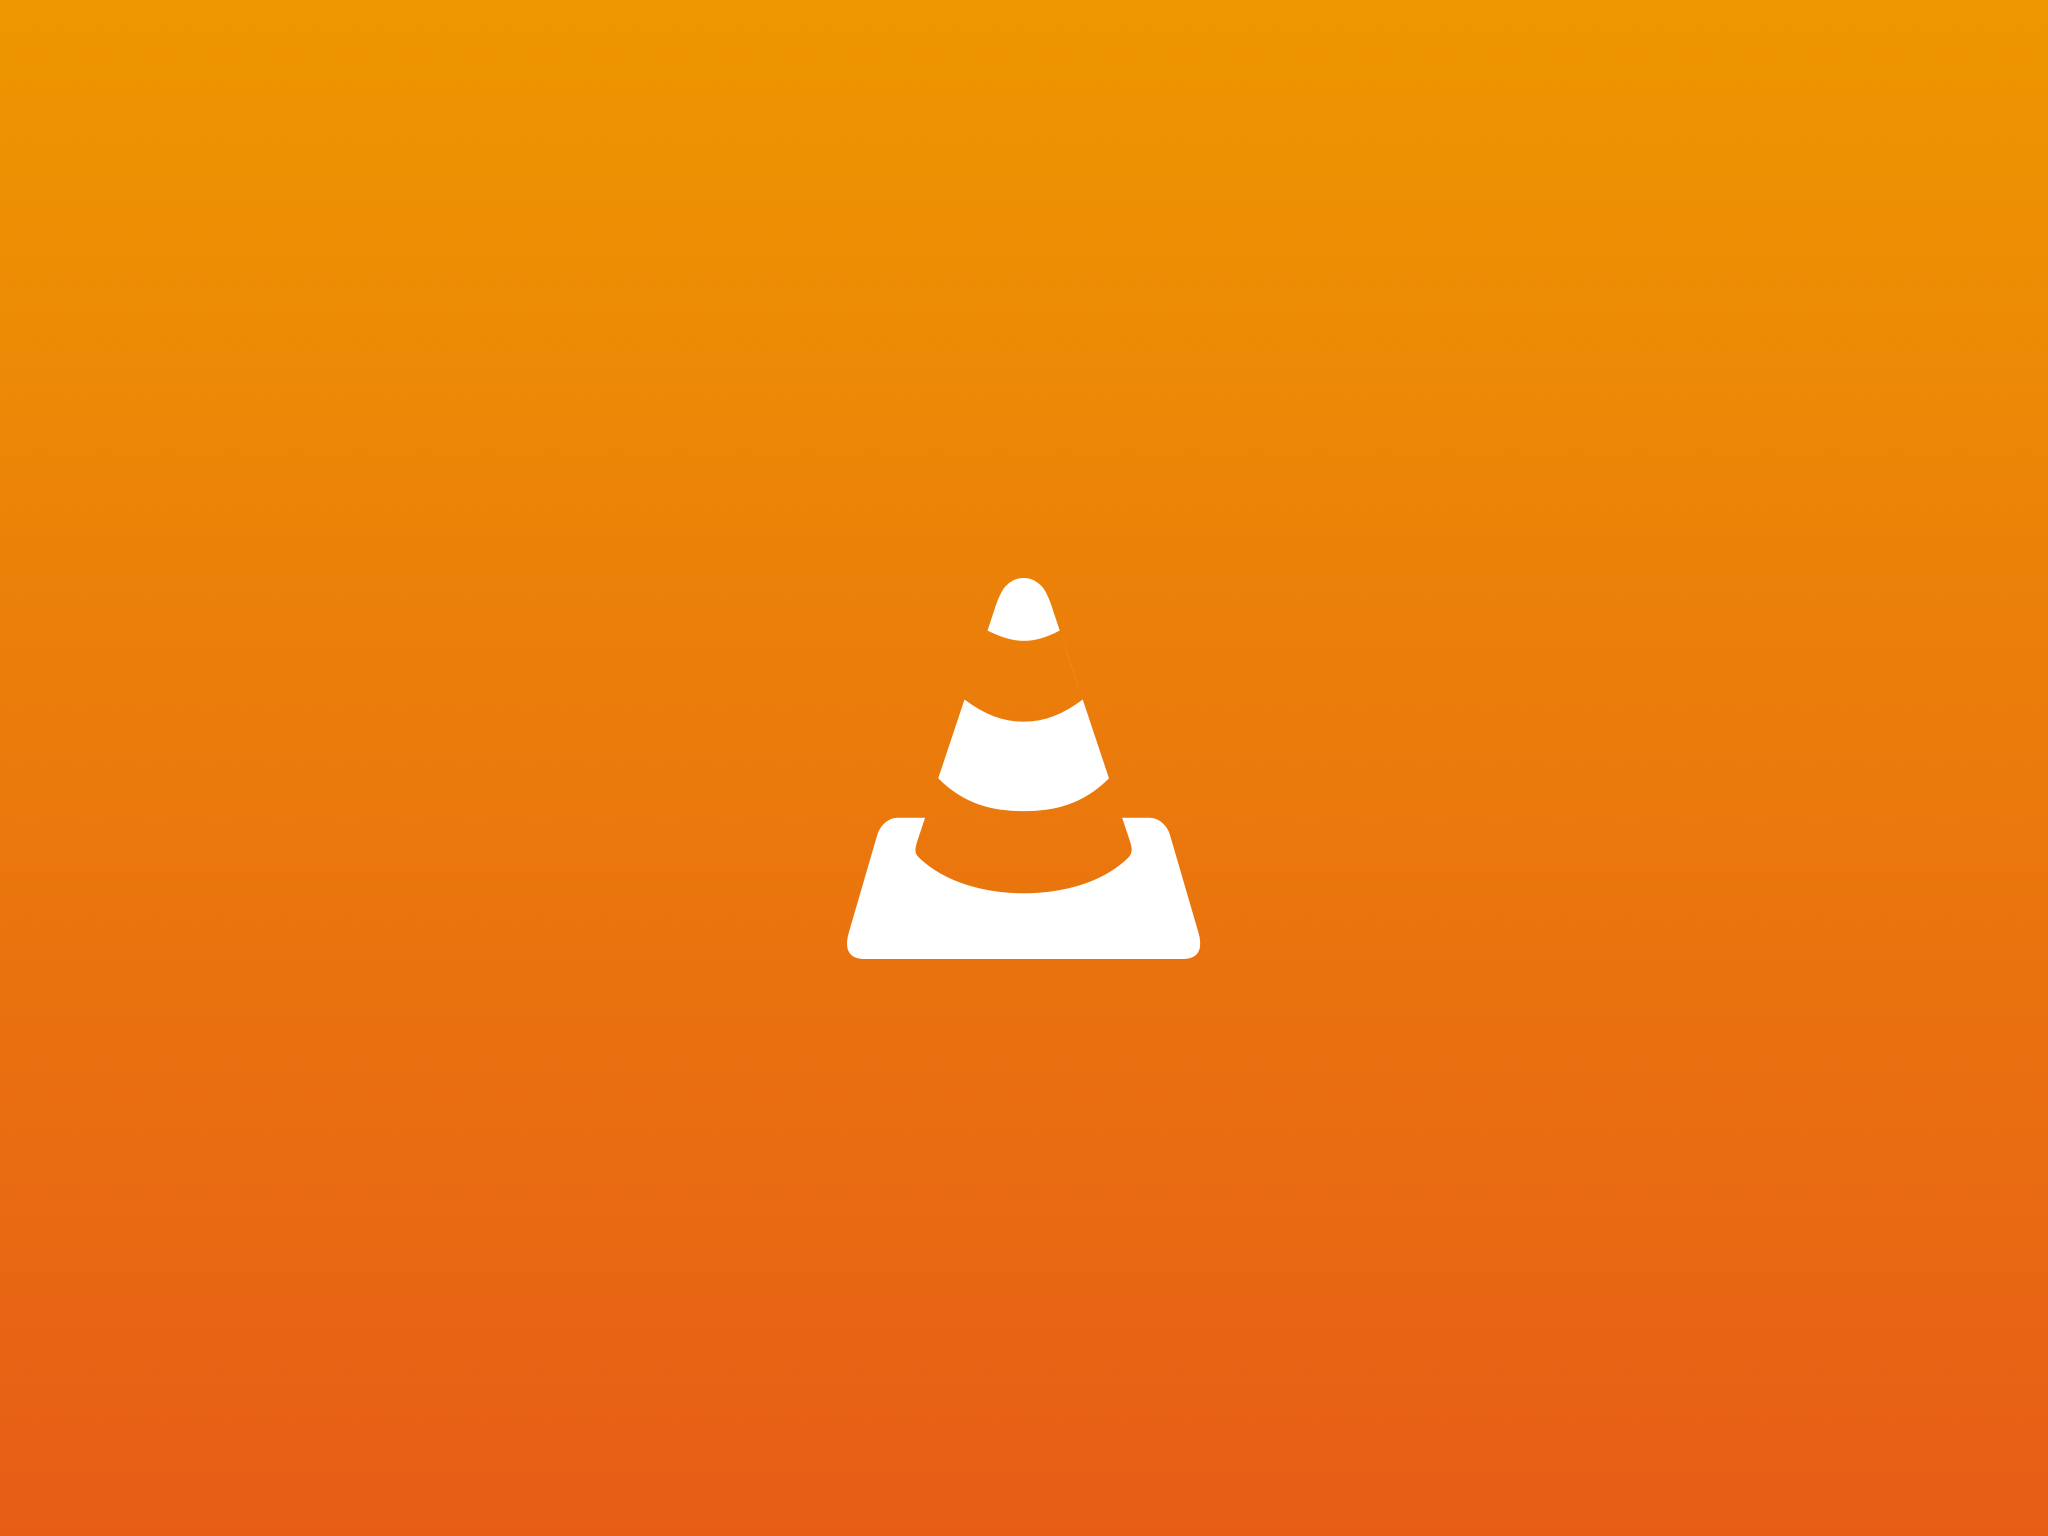 vlc-ios/Images.xcassets/LaunchImage.launchimage/iPad-Landscape@2x.png